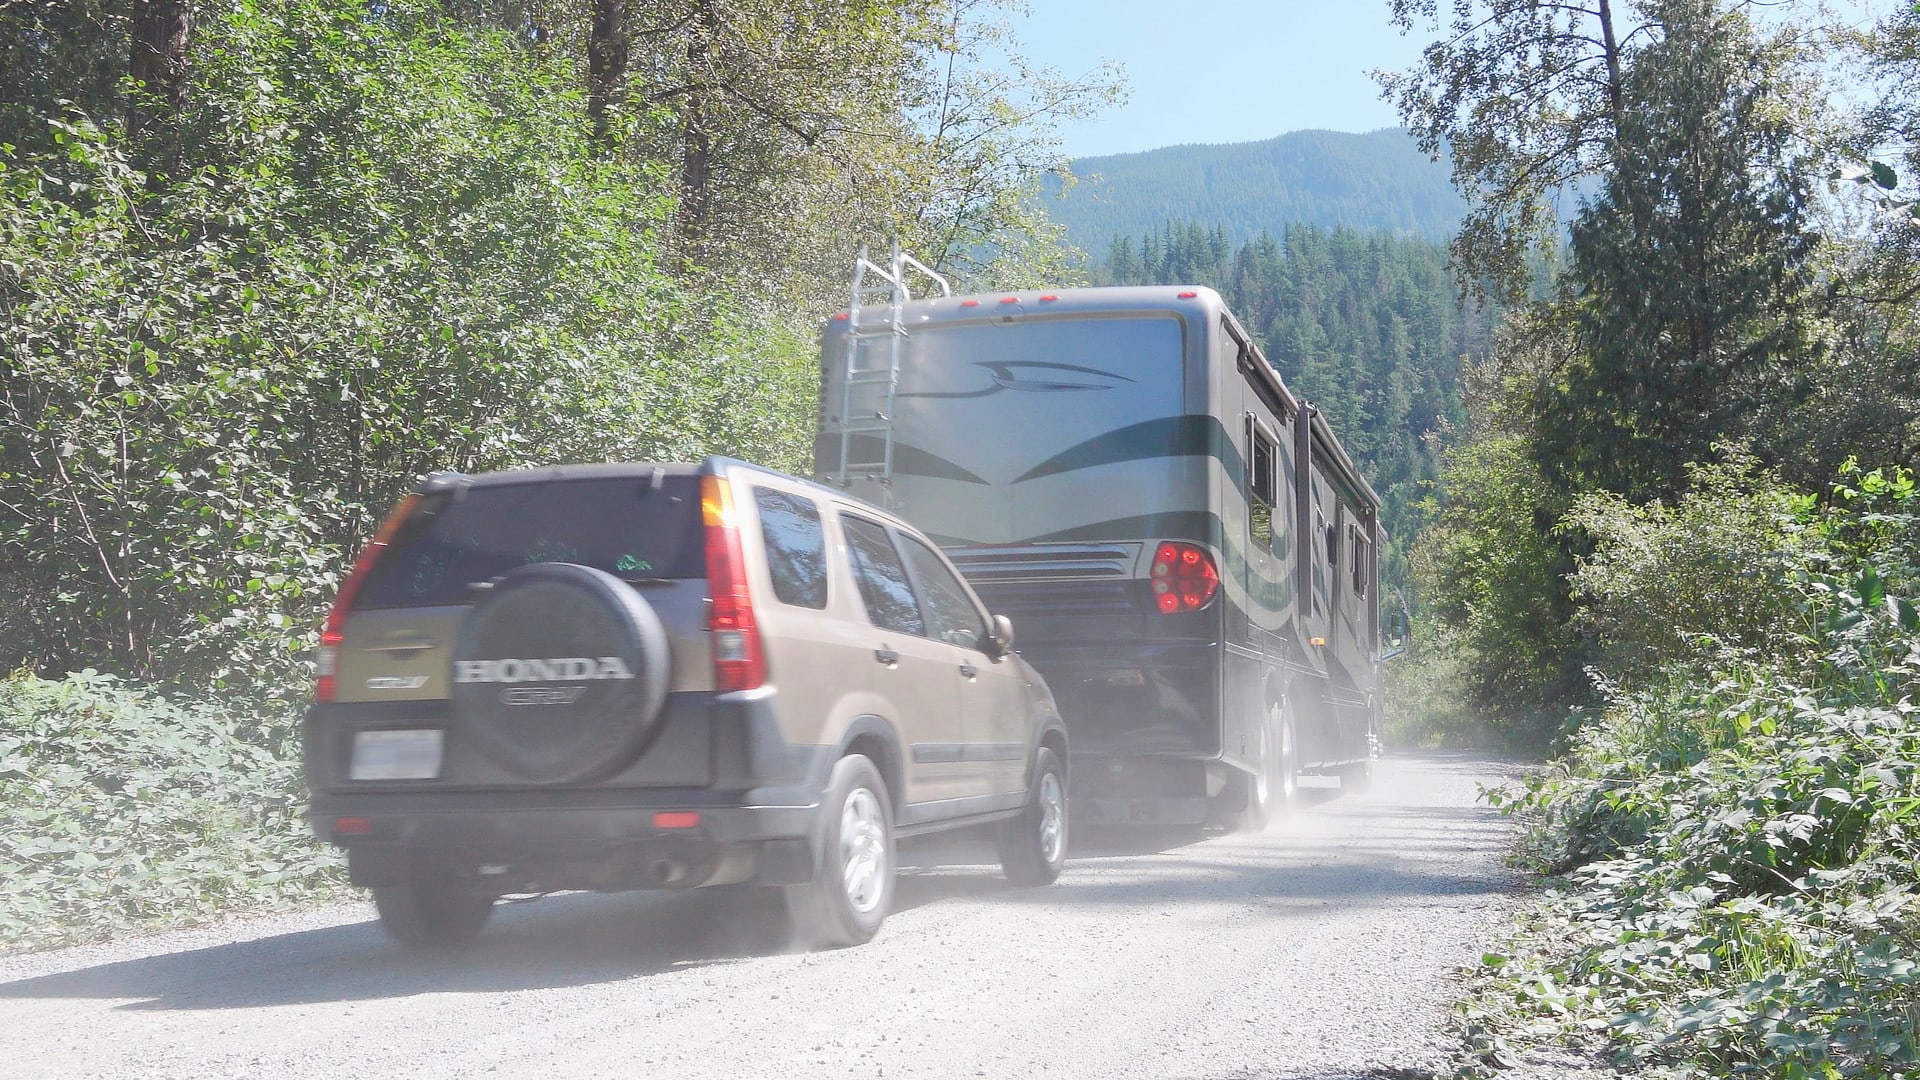 Towing our SUV behind our RV